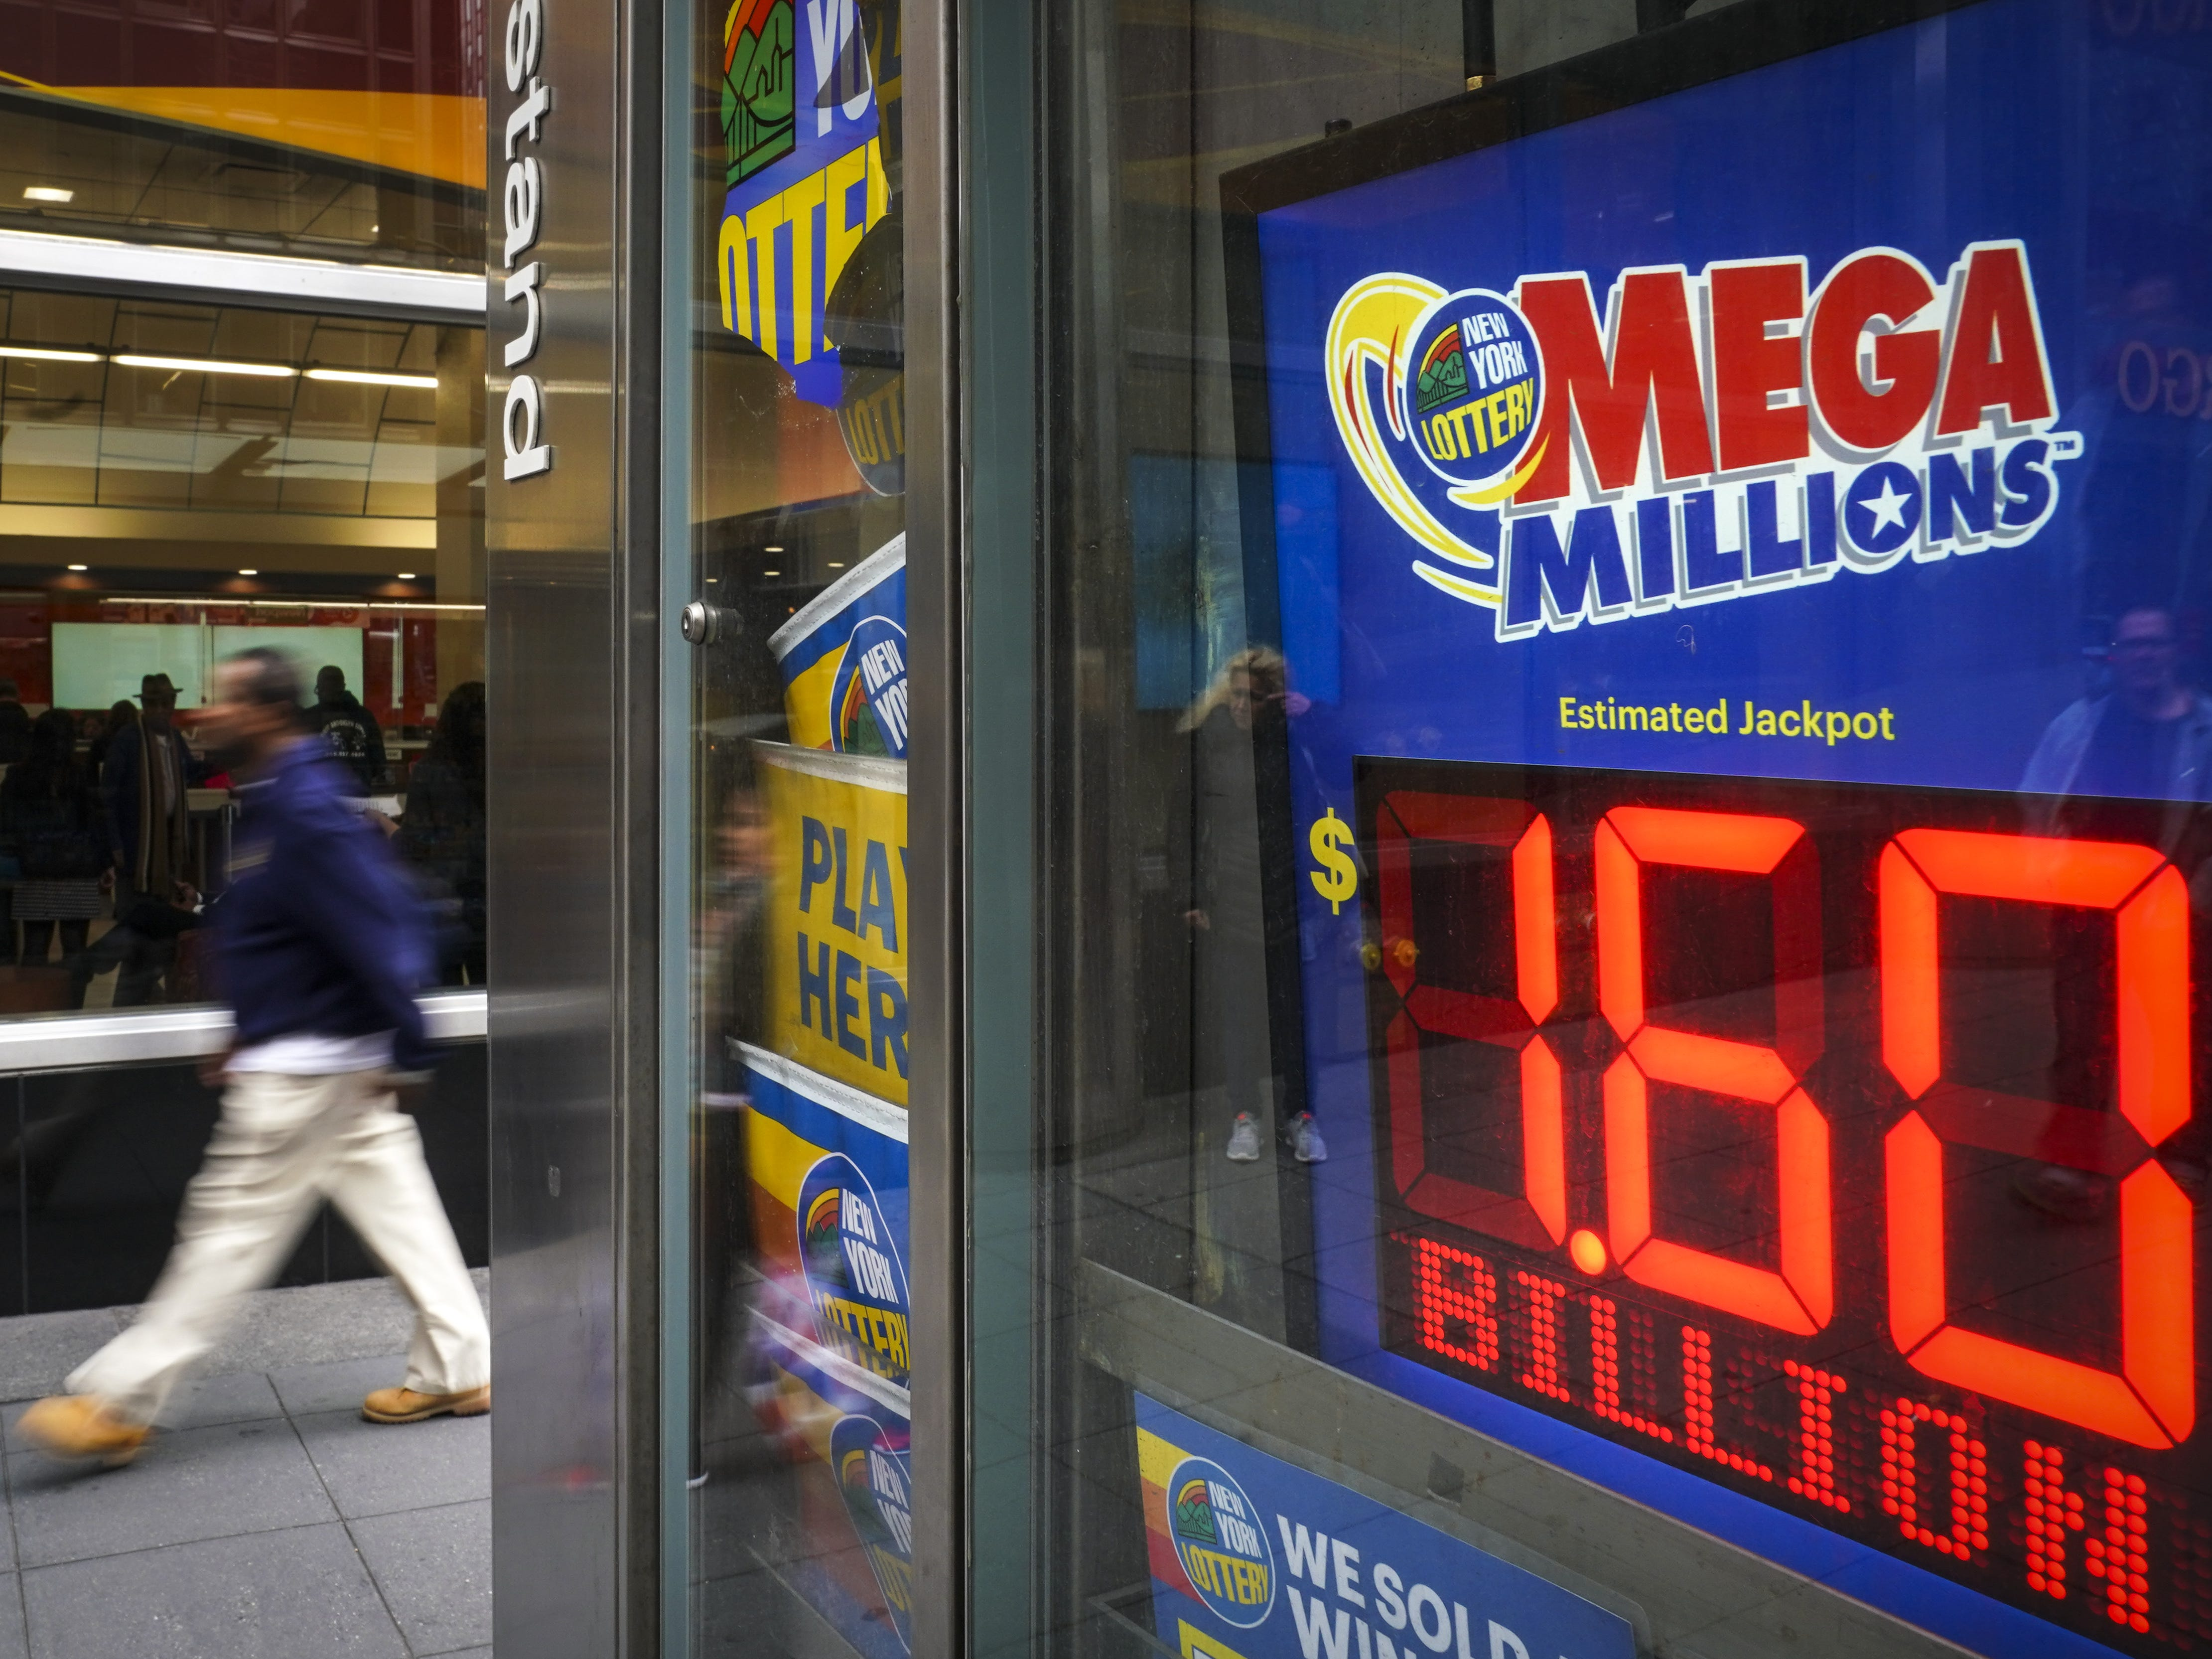 A person walks past a newsstand with advertisements for the Mega Millions lottery, Oct. 23, 2018 in New York.